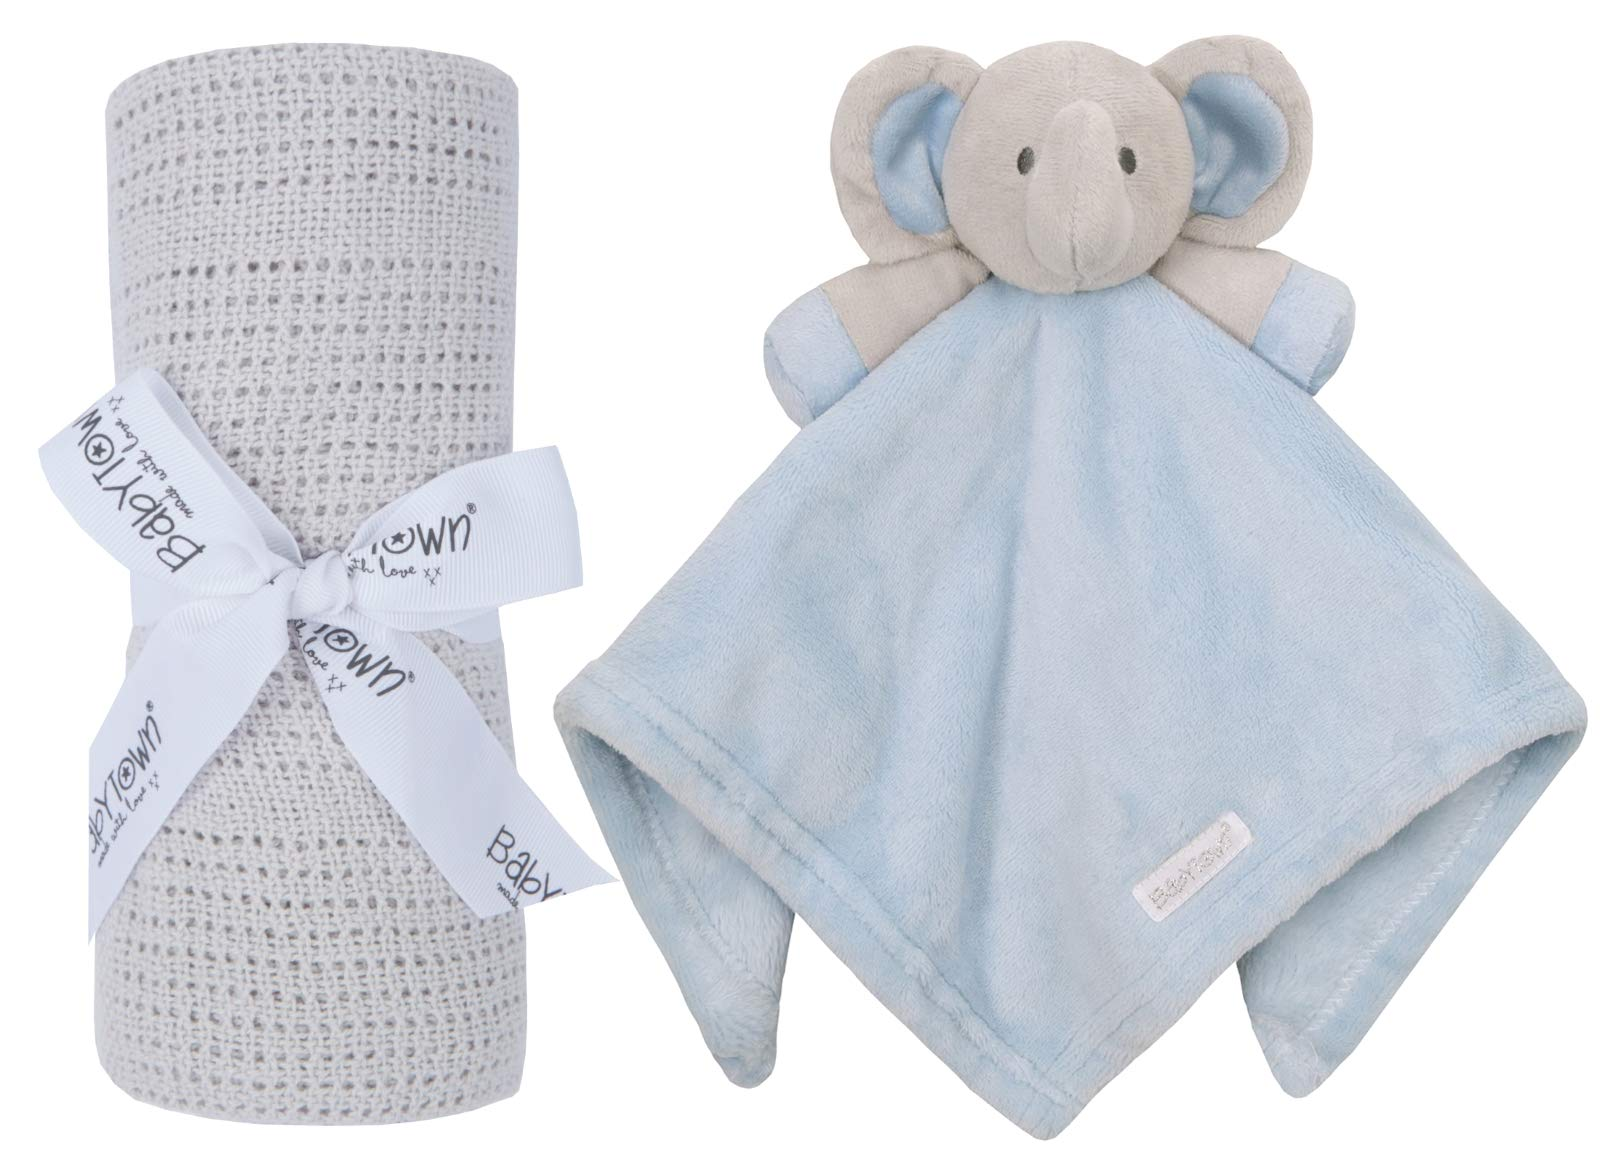 Personalised Baby Comforter Toy and Matching Wrap Set Beautiful Baby Shower Gift Blue Elephant Blue Blanket